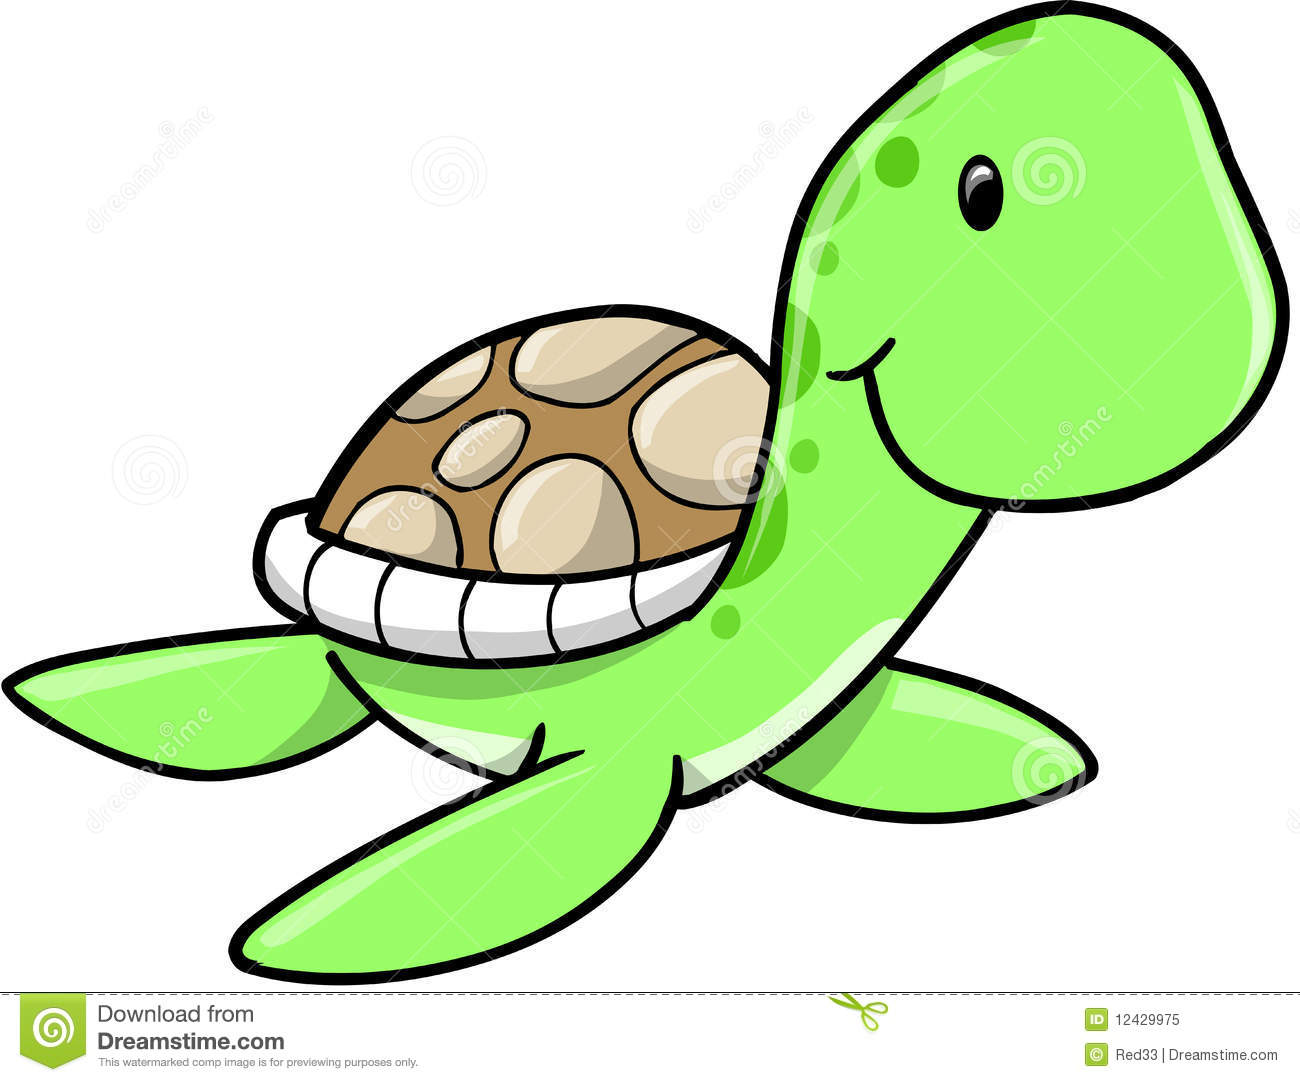 Sea Turtle clipart #3, Download drawings